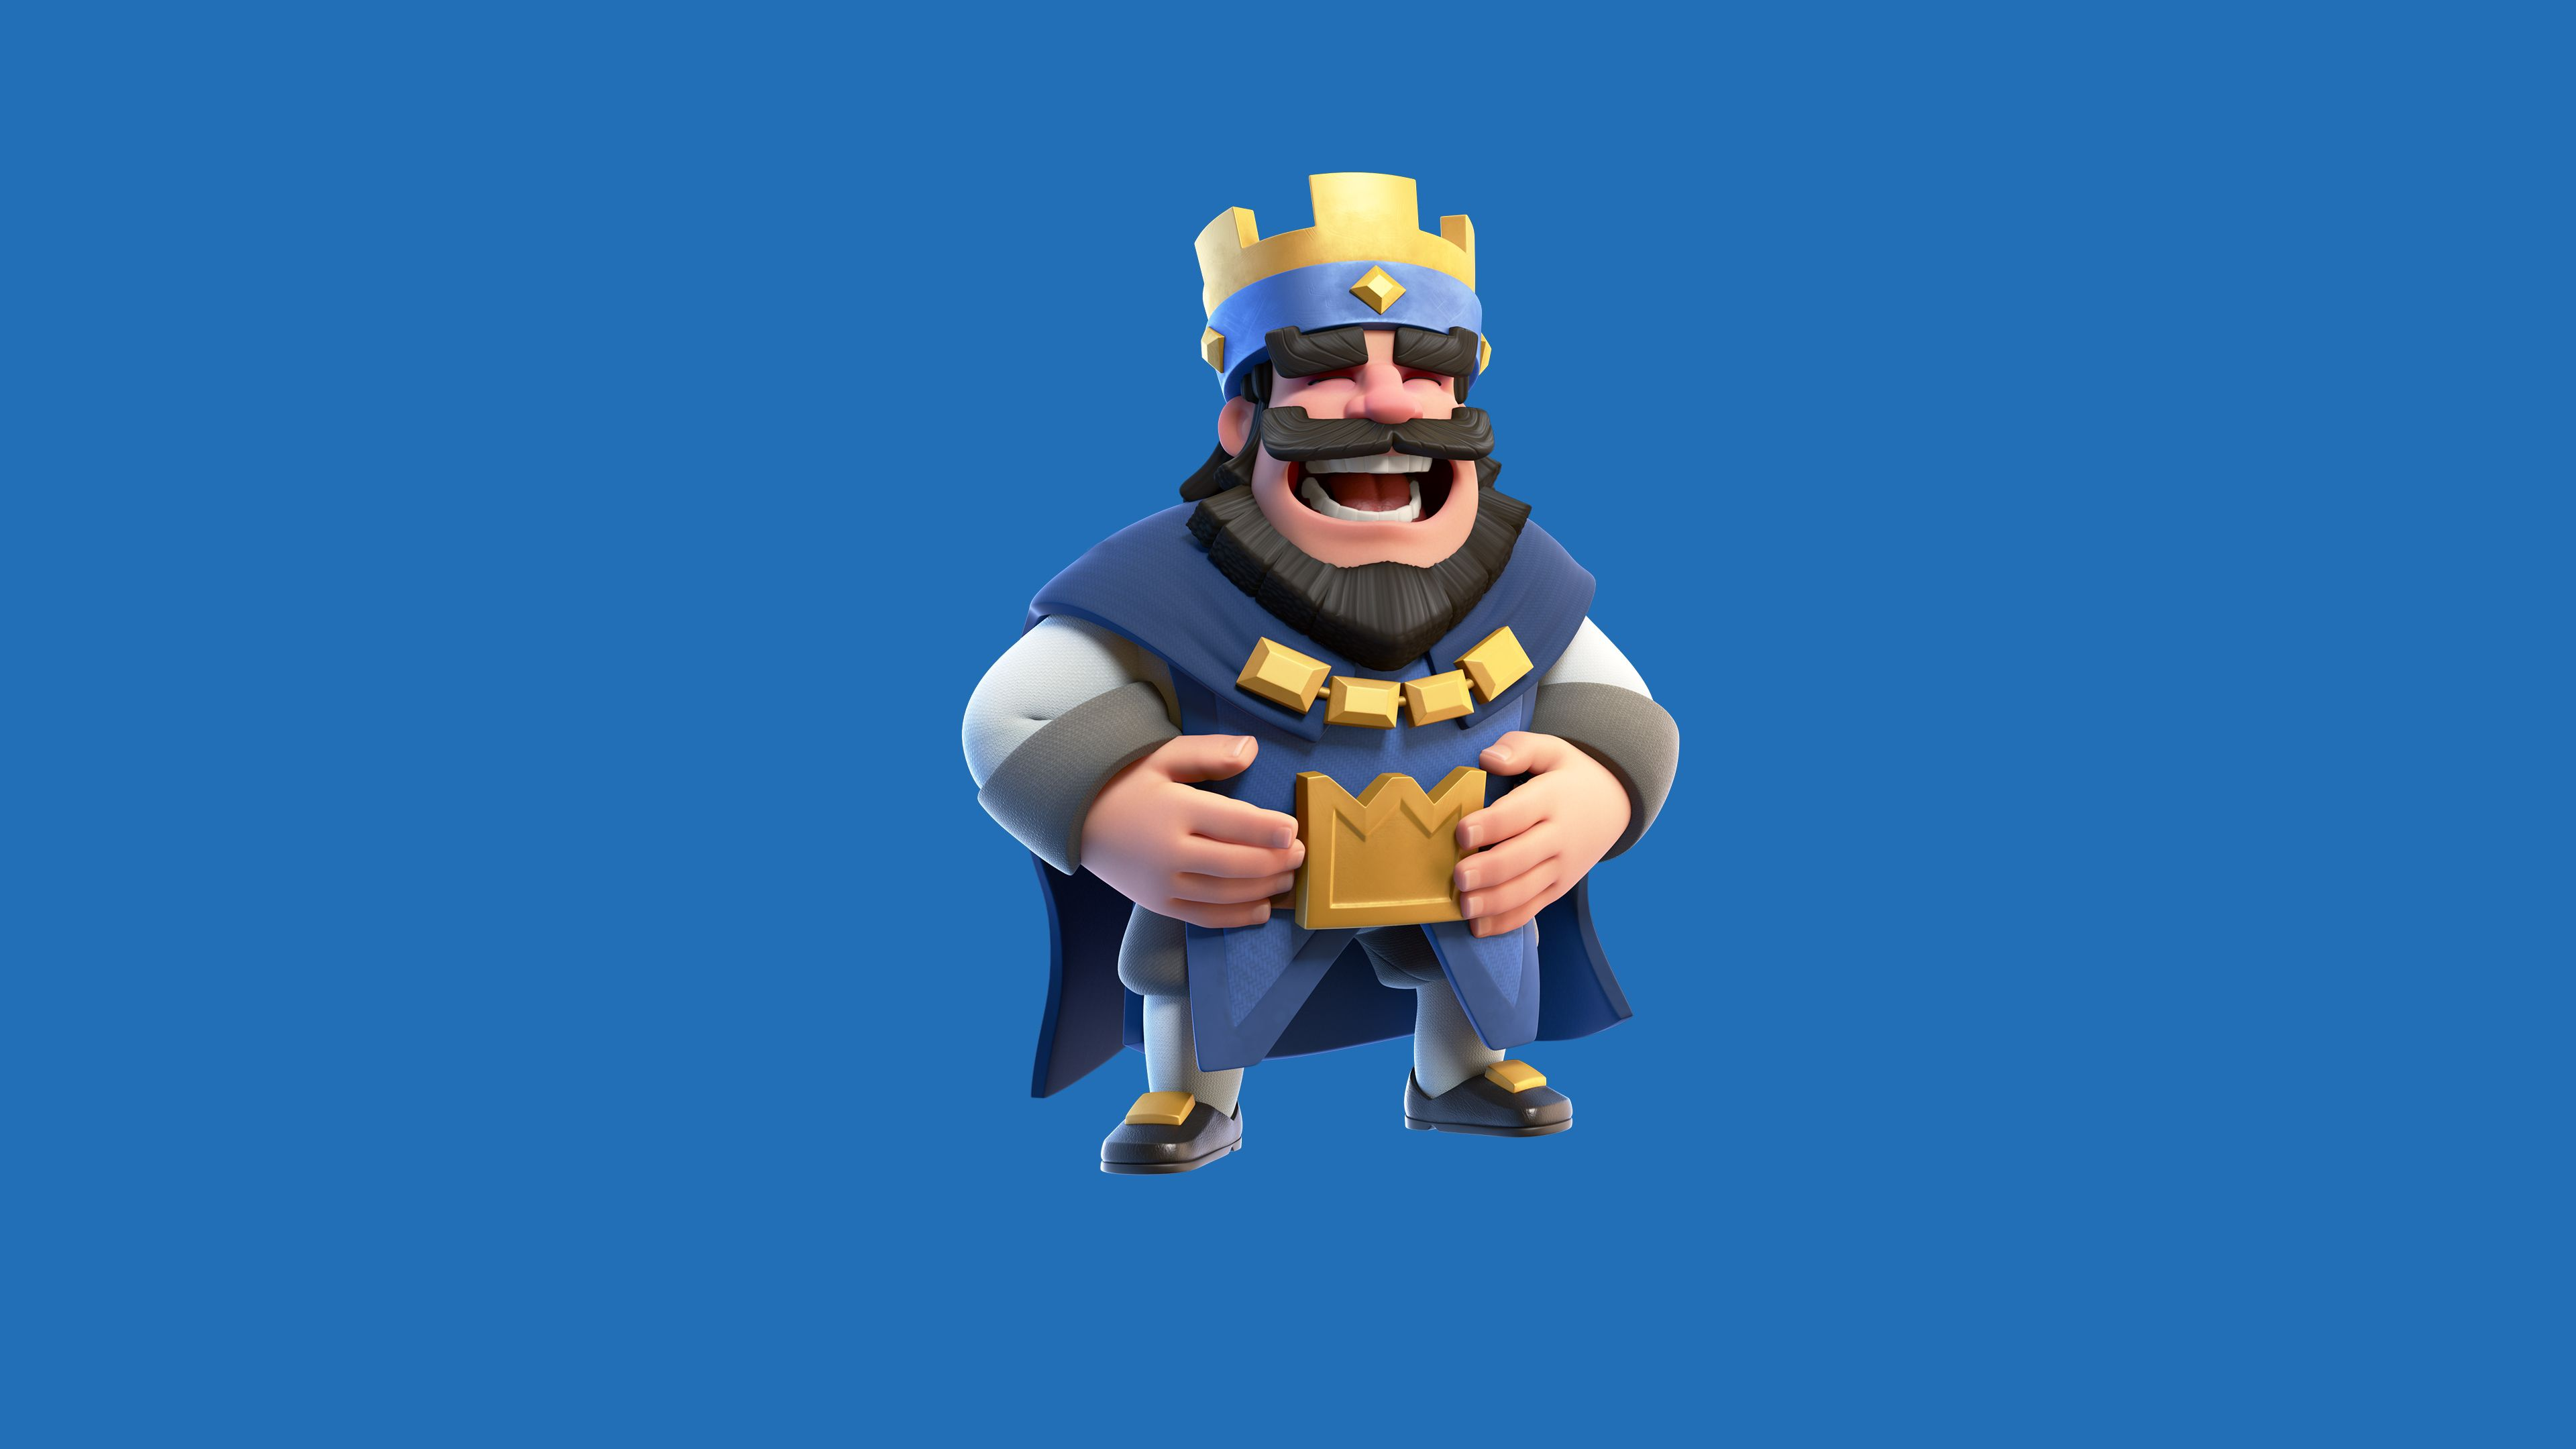 Clash Royale Blue King Supercell Wallpapers Games Wallpapers Clash Royale Wallpapers 2016 Games Wallpape Clash Royale Wallpaper Royal Wallpaper Clash Royale